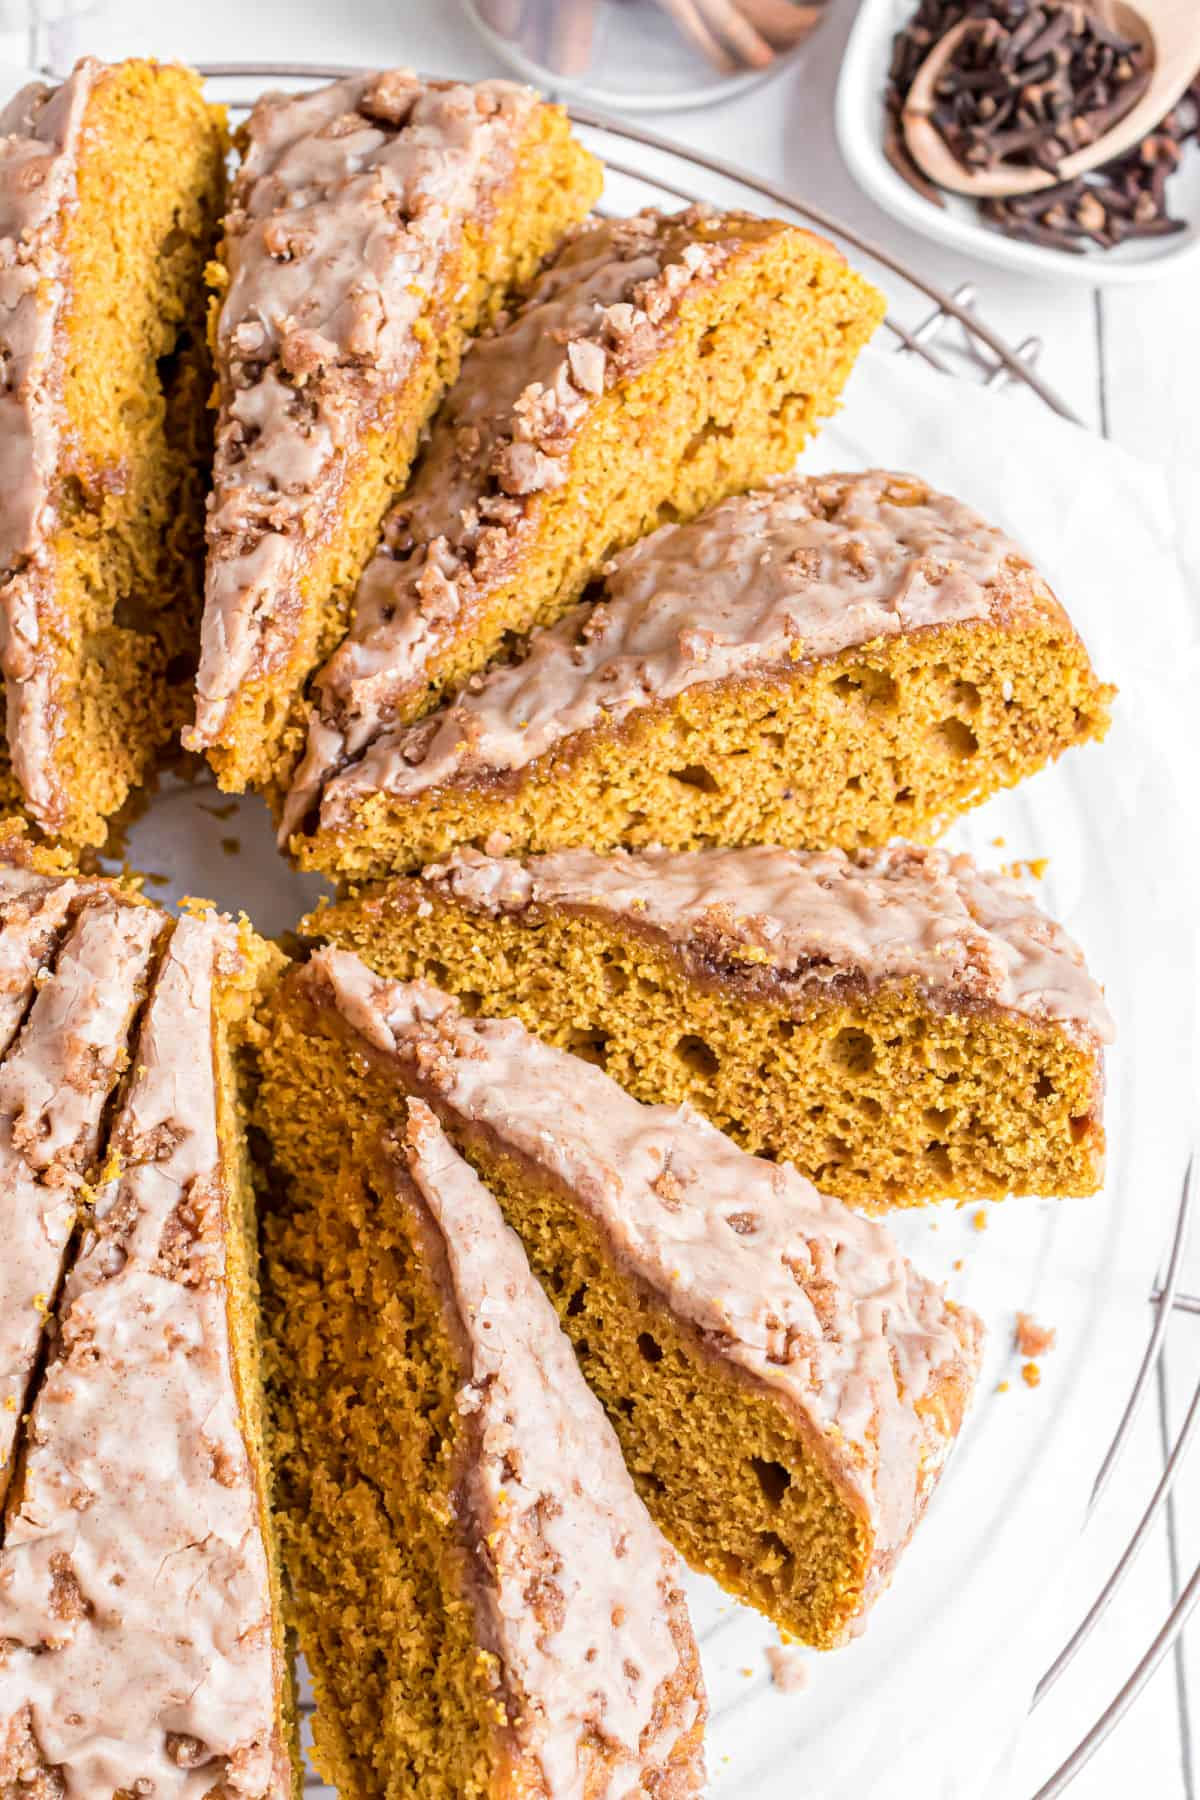 Pumpkin coffee cake with streusel and icing, sliced on a plate.